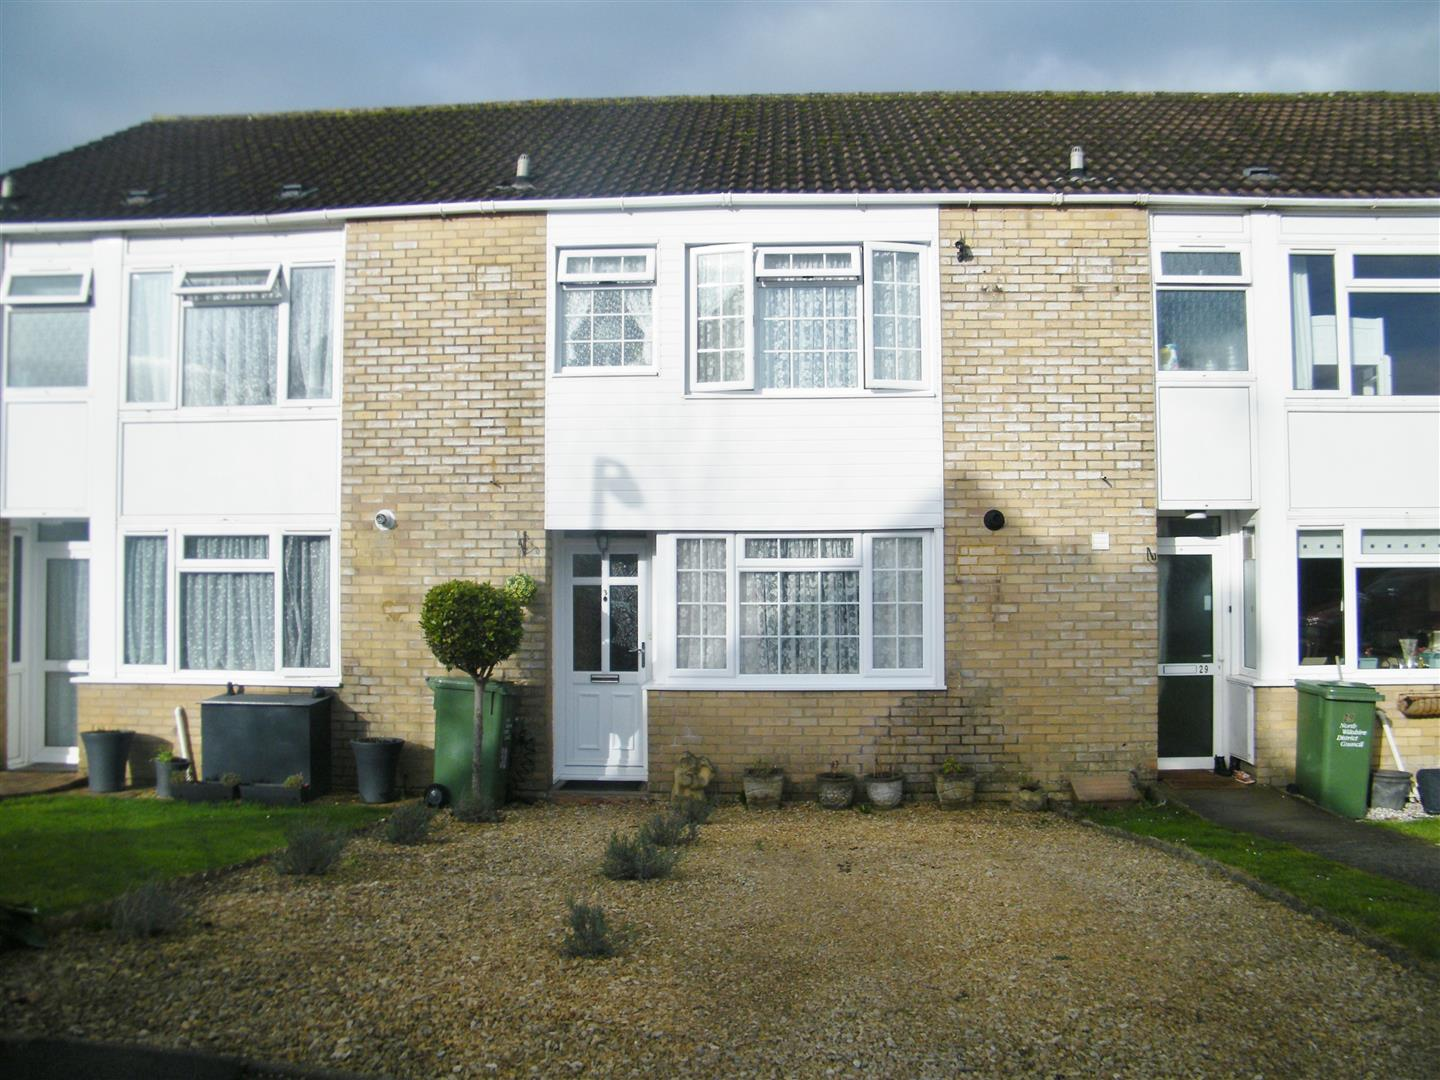 3 Bedrooms Terraced House for sale in Bentley Grove, Calne